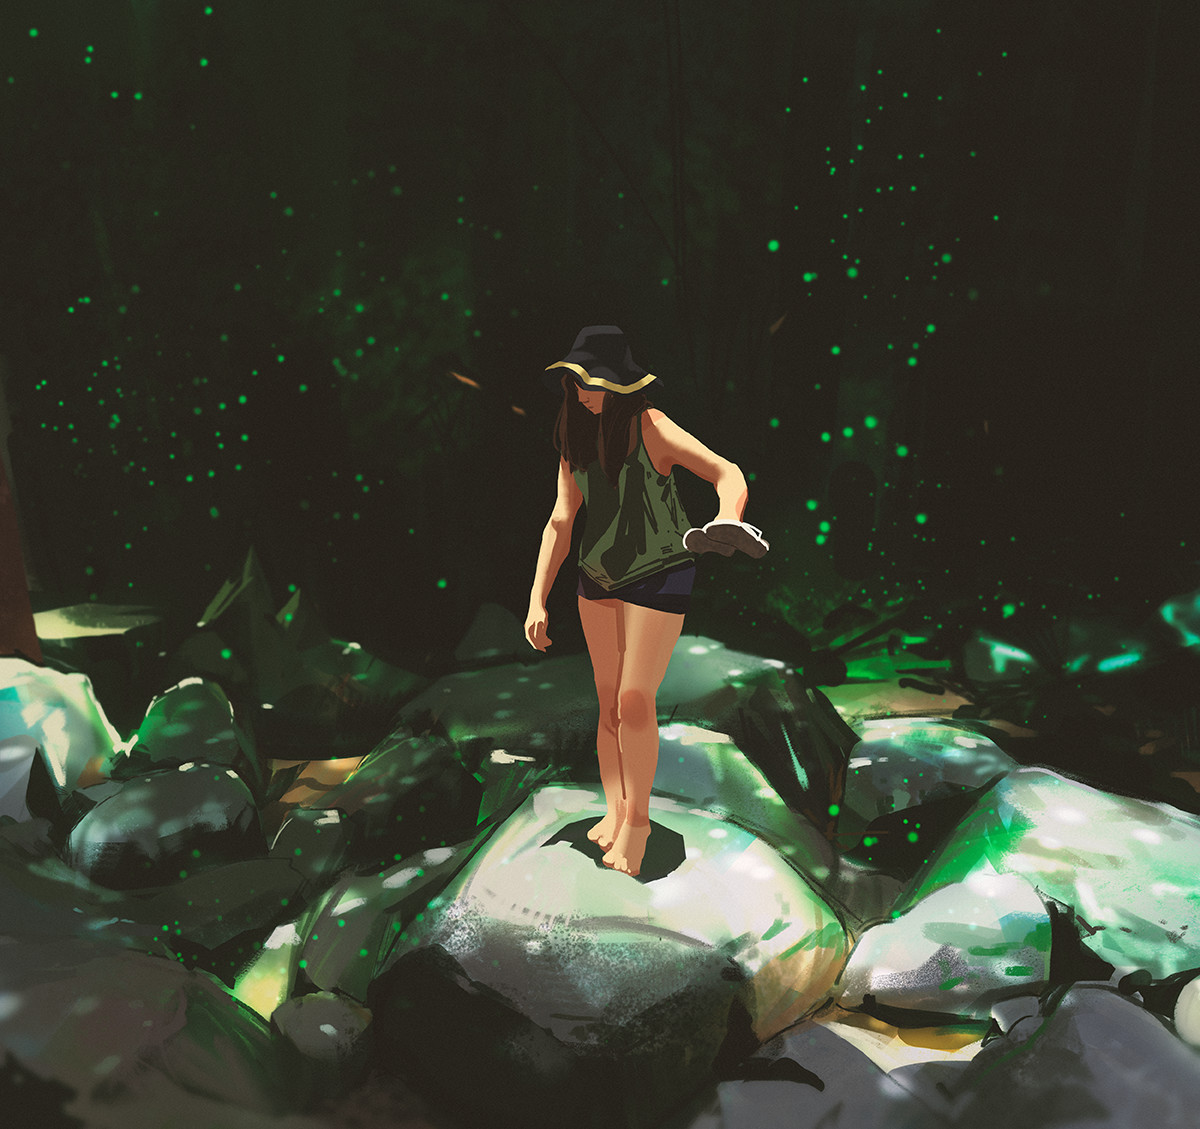 Sketch collection 1 2019 Heat of the forest, Atey Ghailan_01